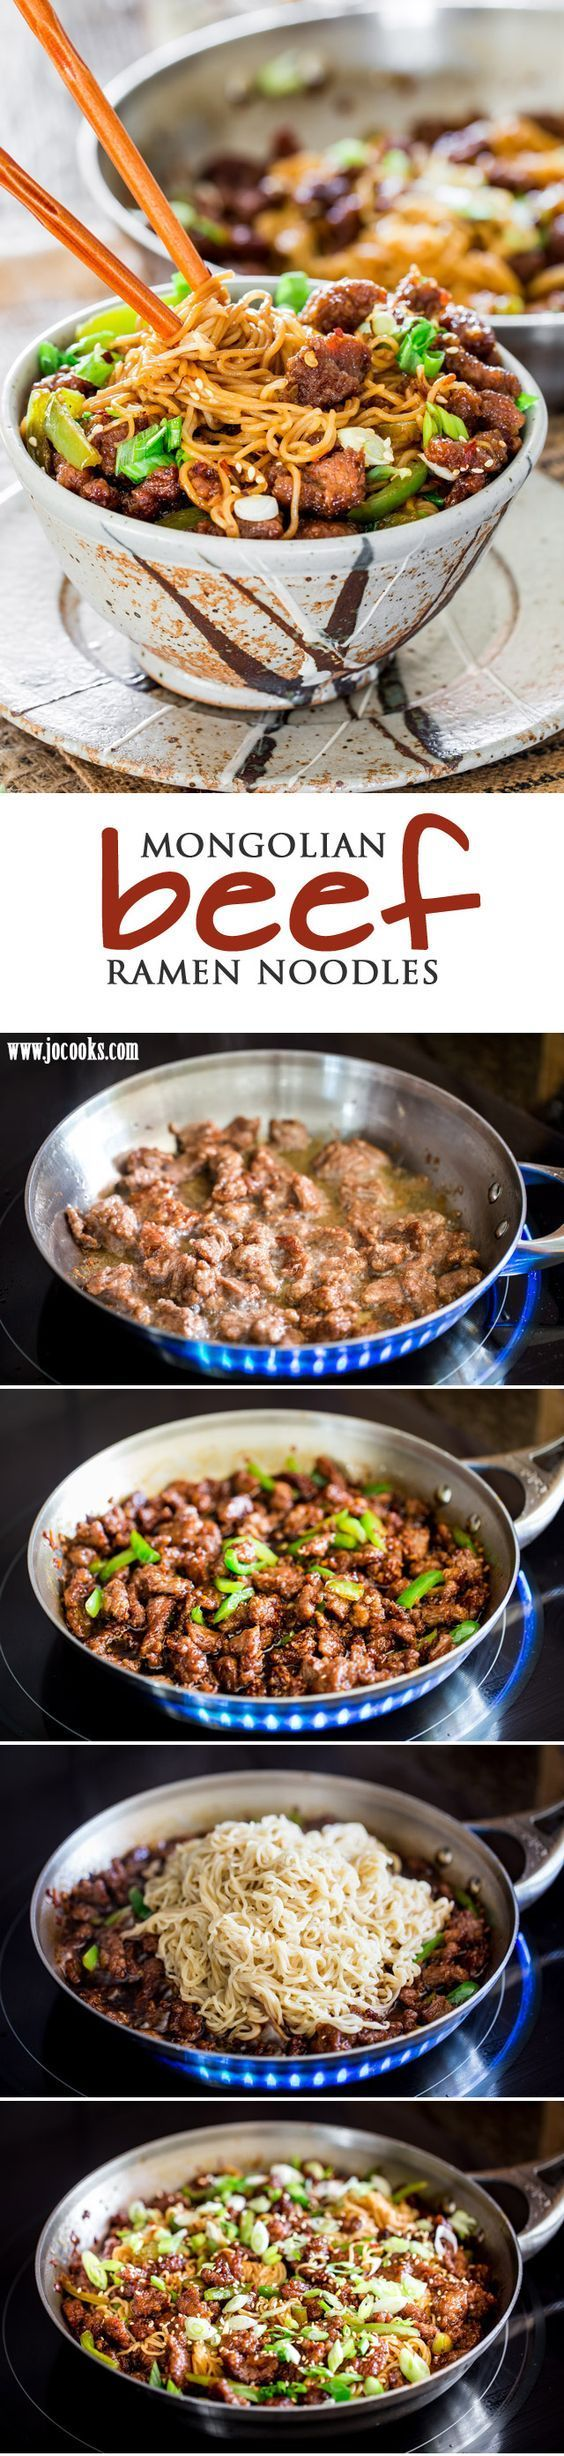 Mongolian Beef Ramen Noodles - a copycat recipe of the popular PF Chang's Mongolian Beef with green peppers and ramen noodles. So simple to make and so delicious, you'll want to forget about takeout!